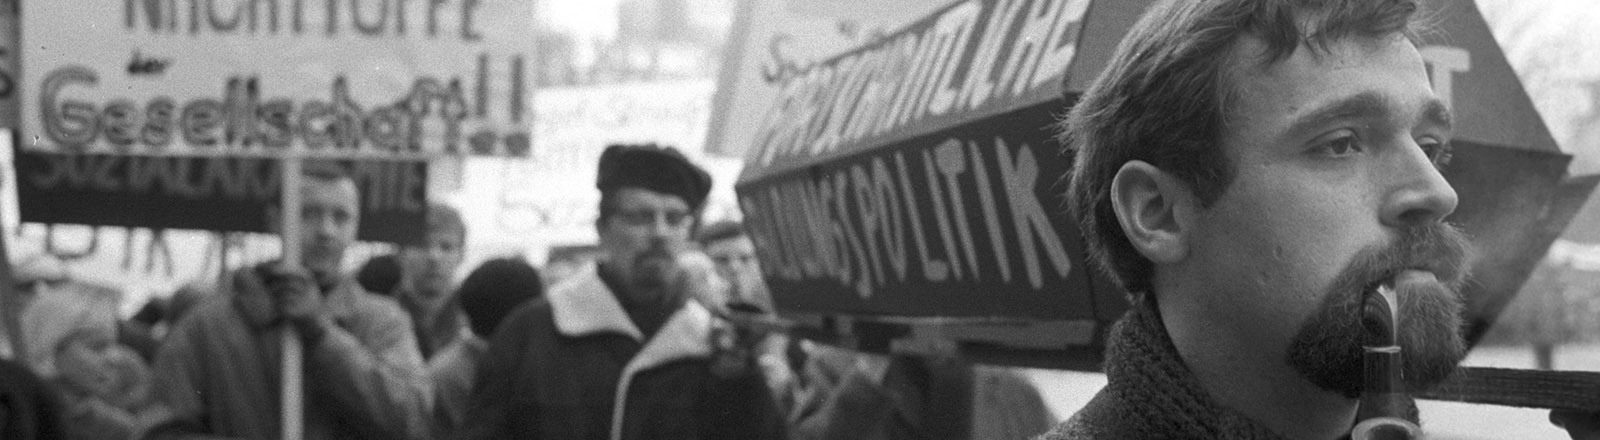 Studentendemo in Berlin 1968.